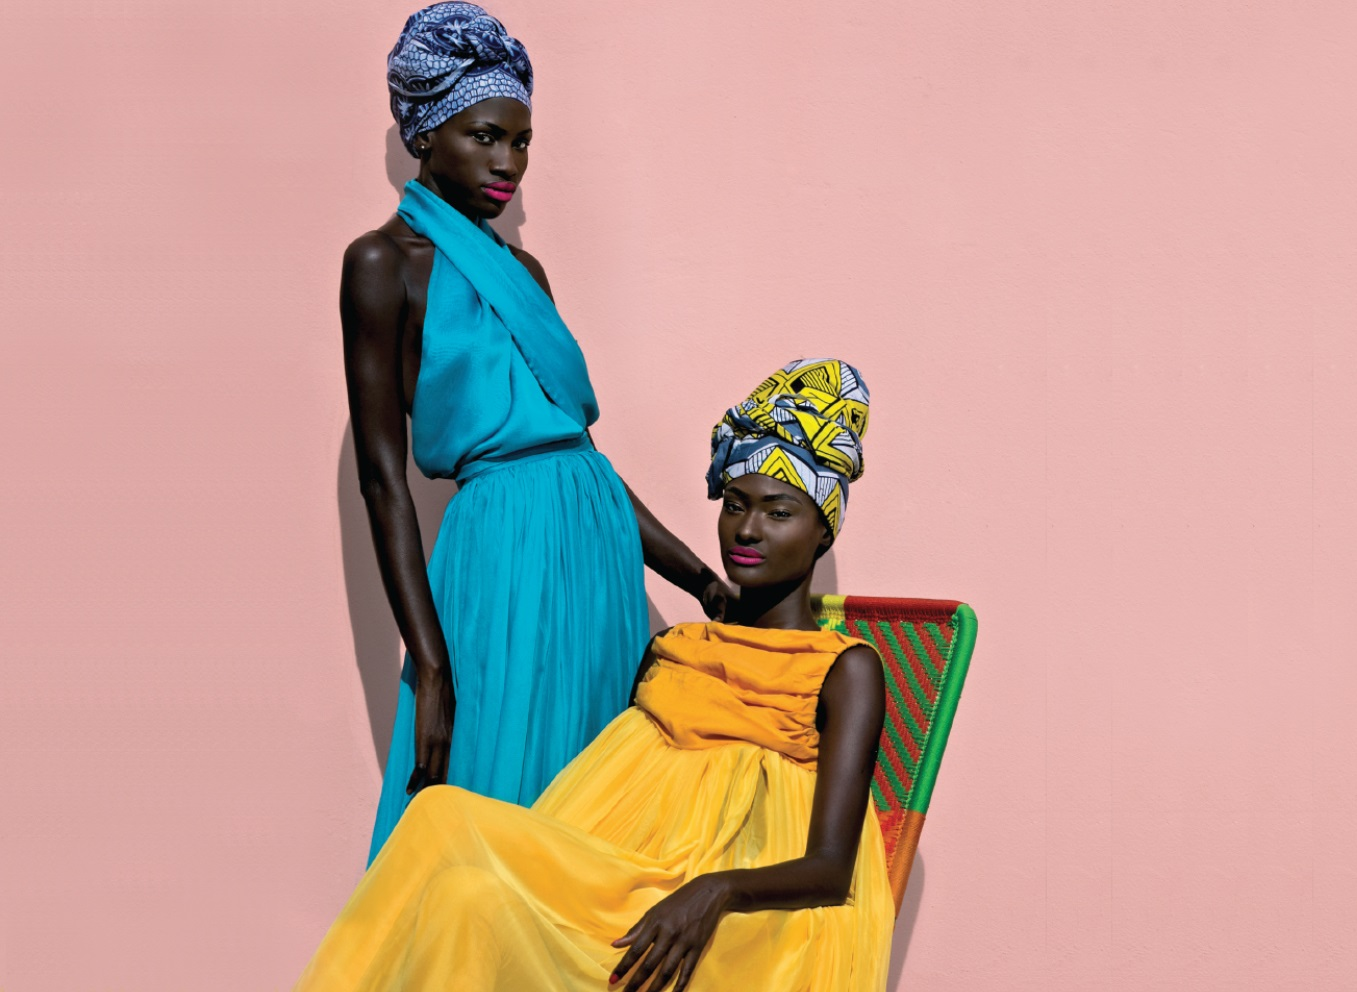 African fashion : colored dresses and headscarves